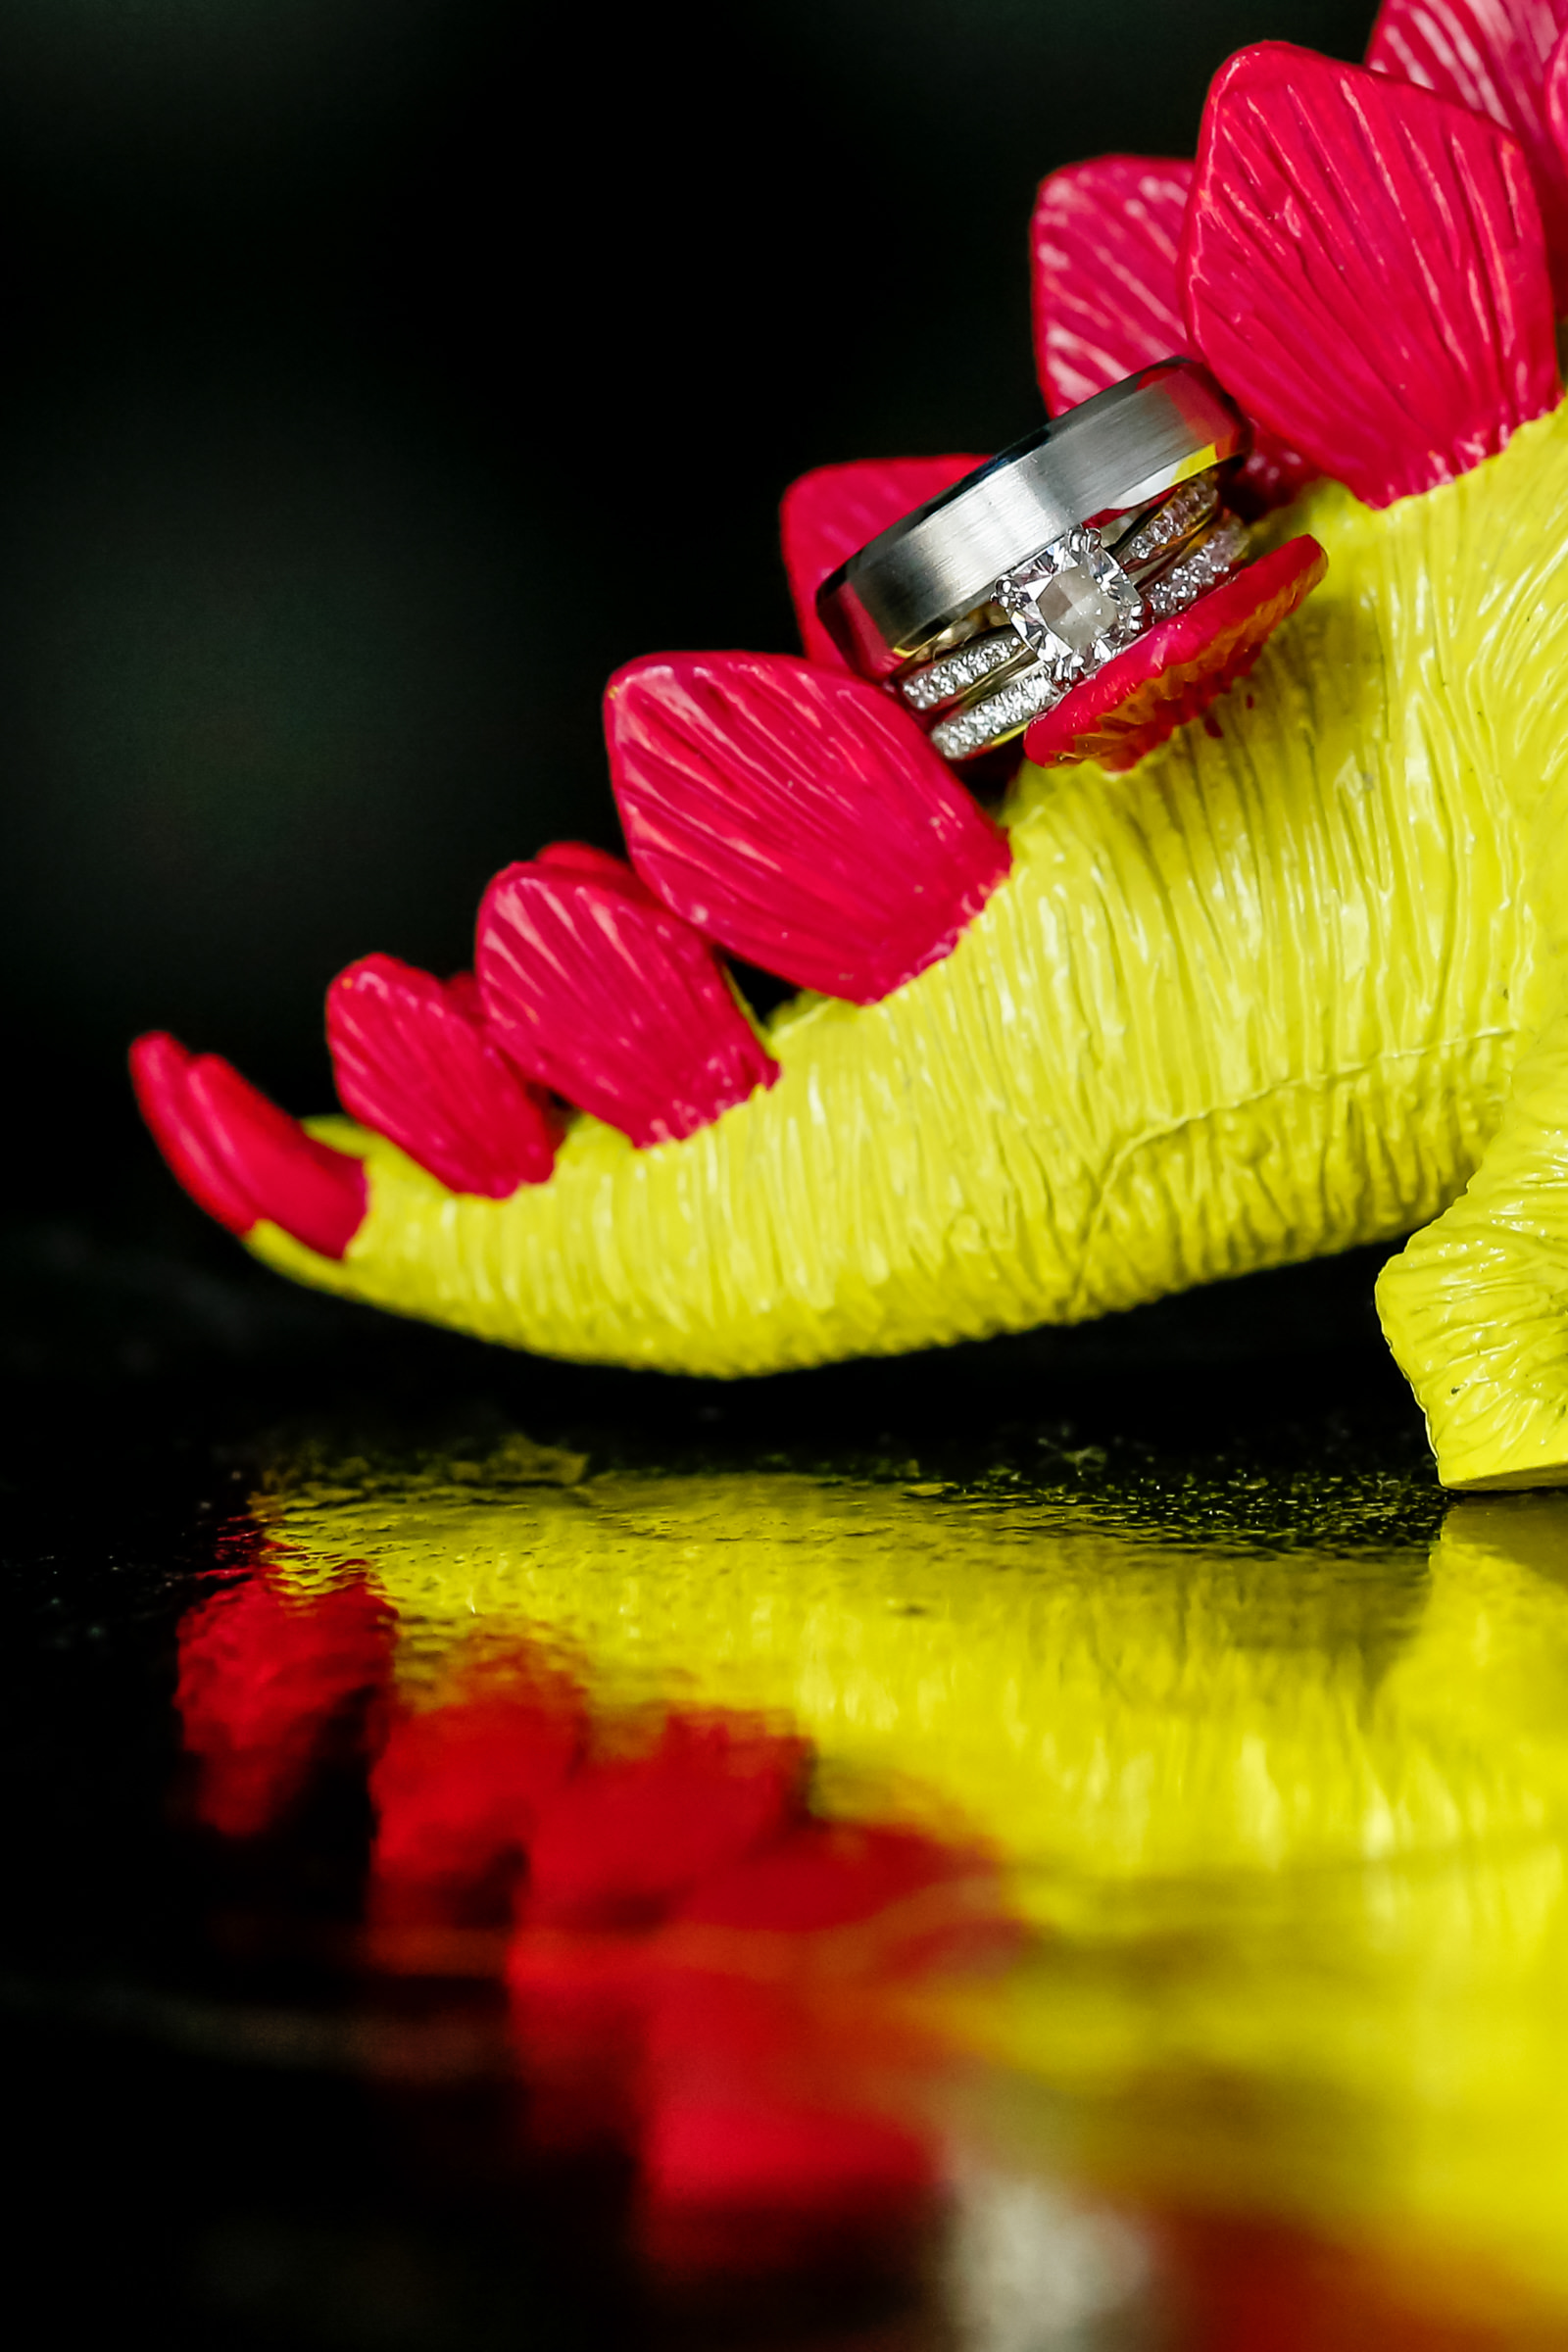 Rings displayed back of toy dinosaur - photo by Procopio Photography